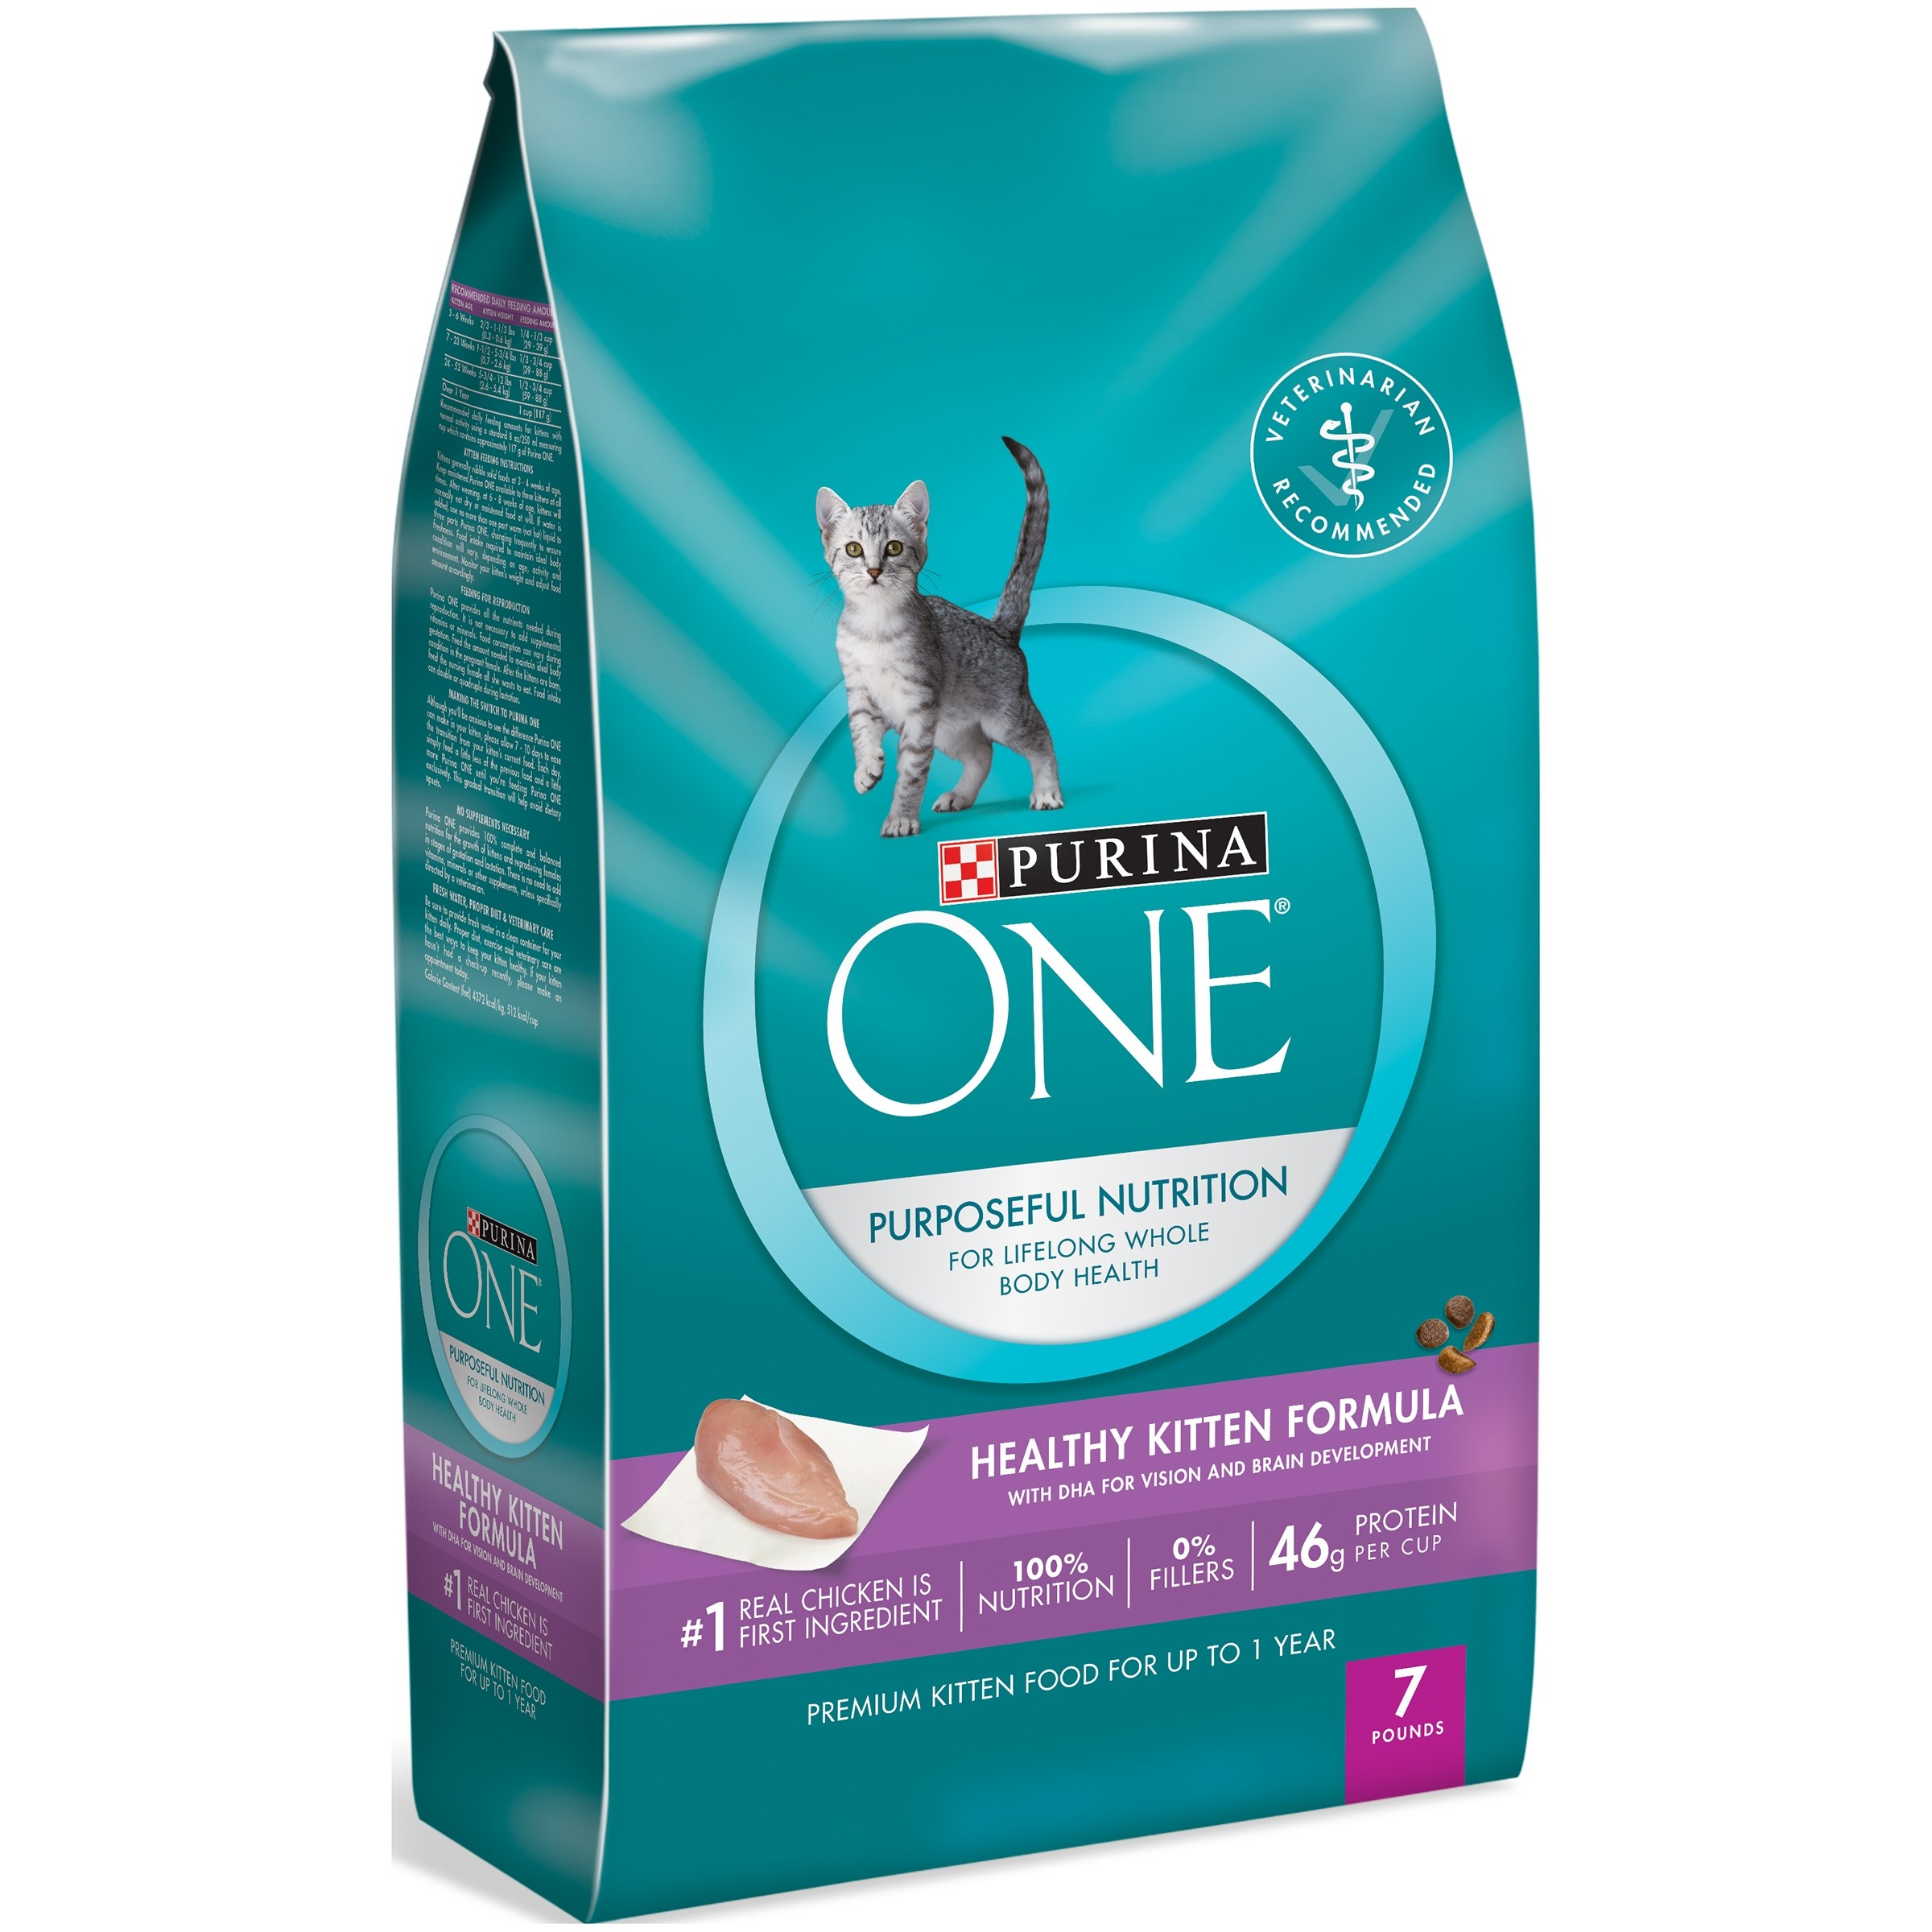 Purina ONE Healthy Kitten Formula Dry Kitten Food, 7 lb